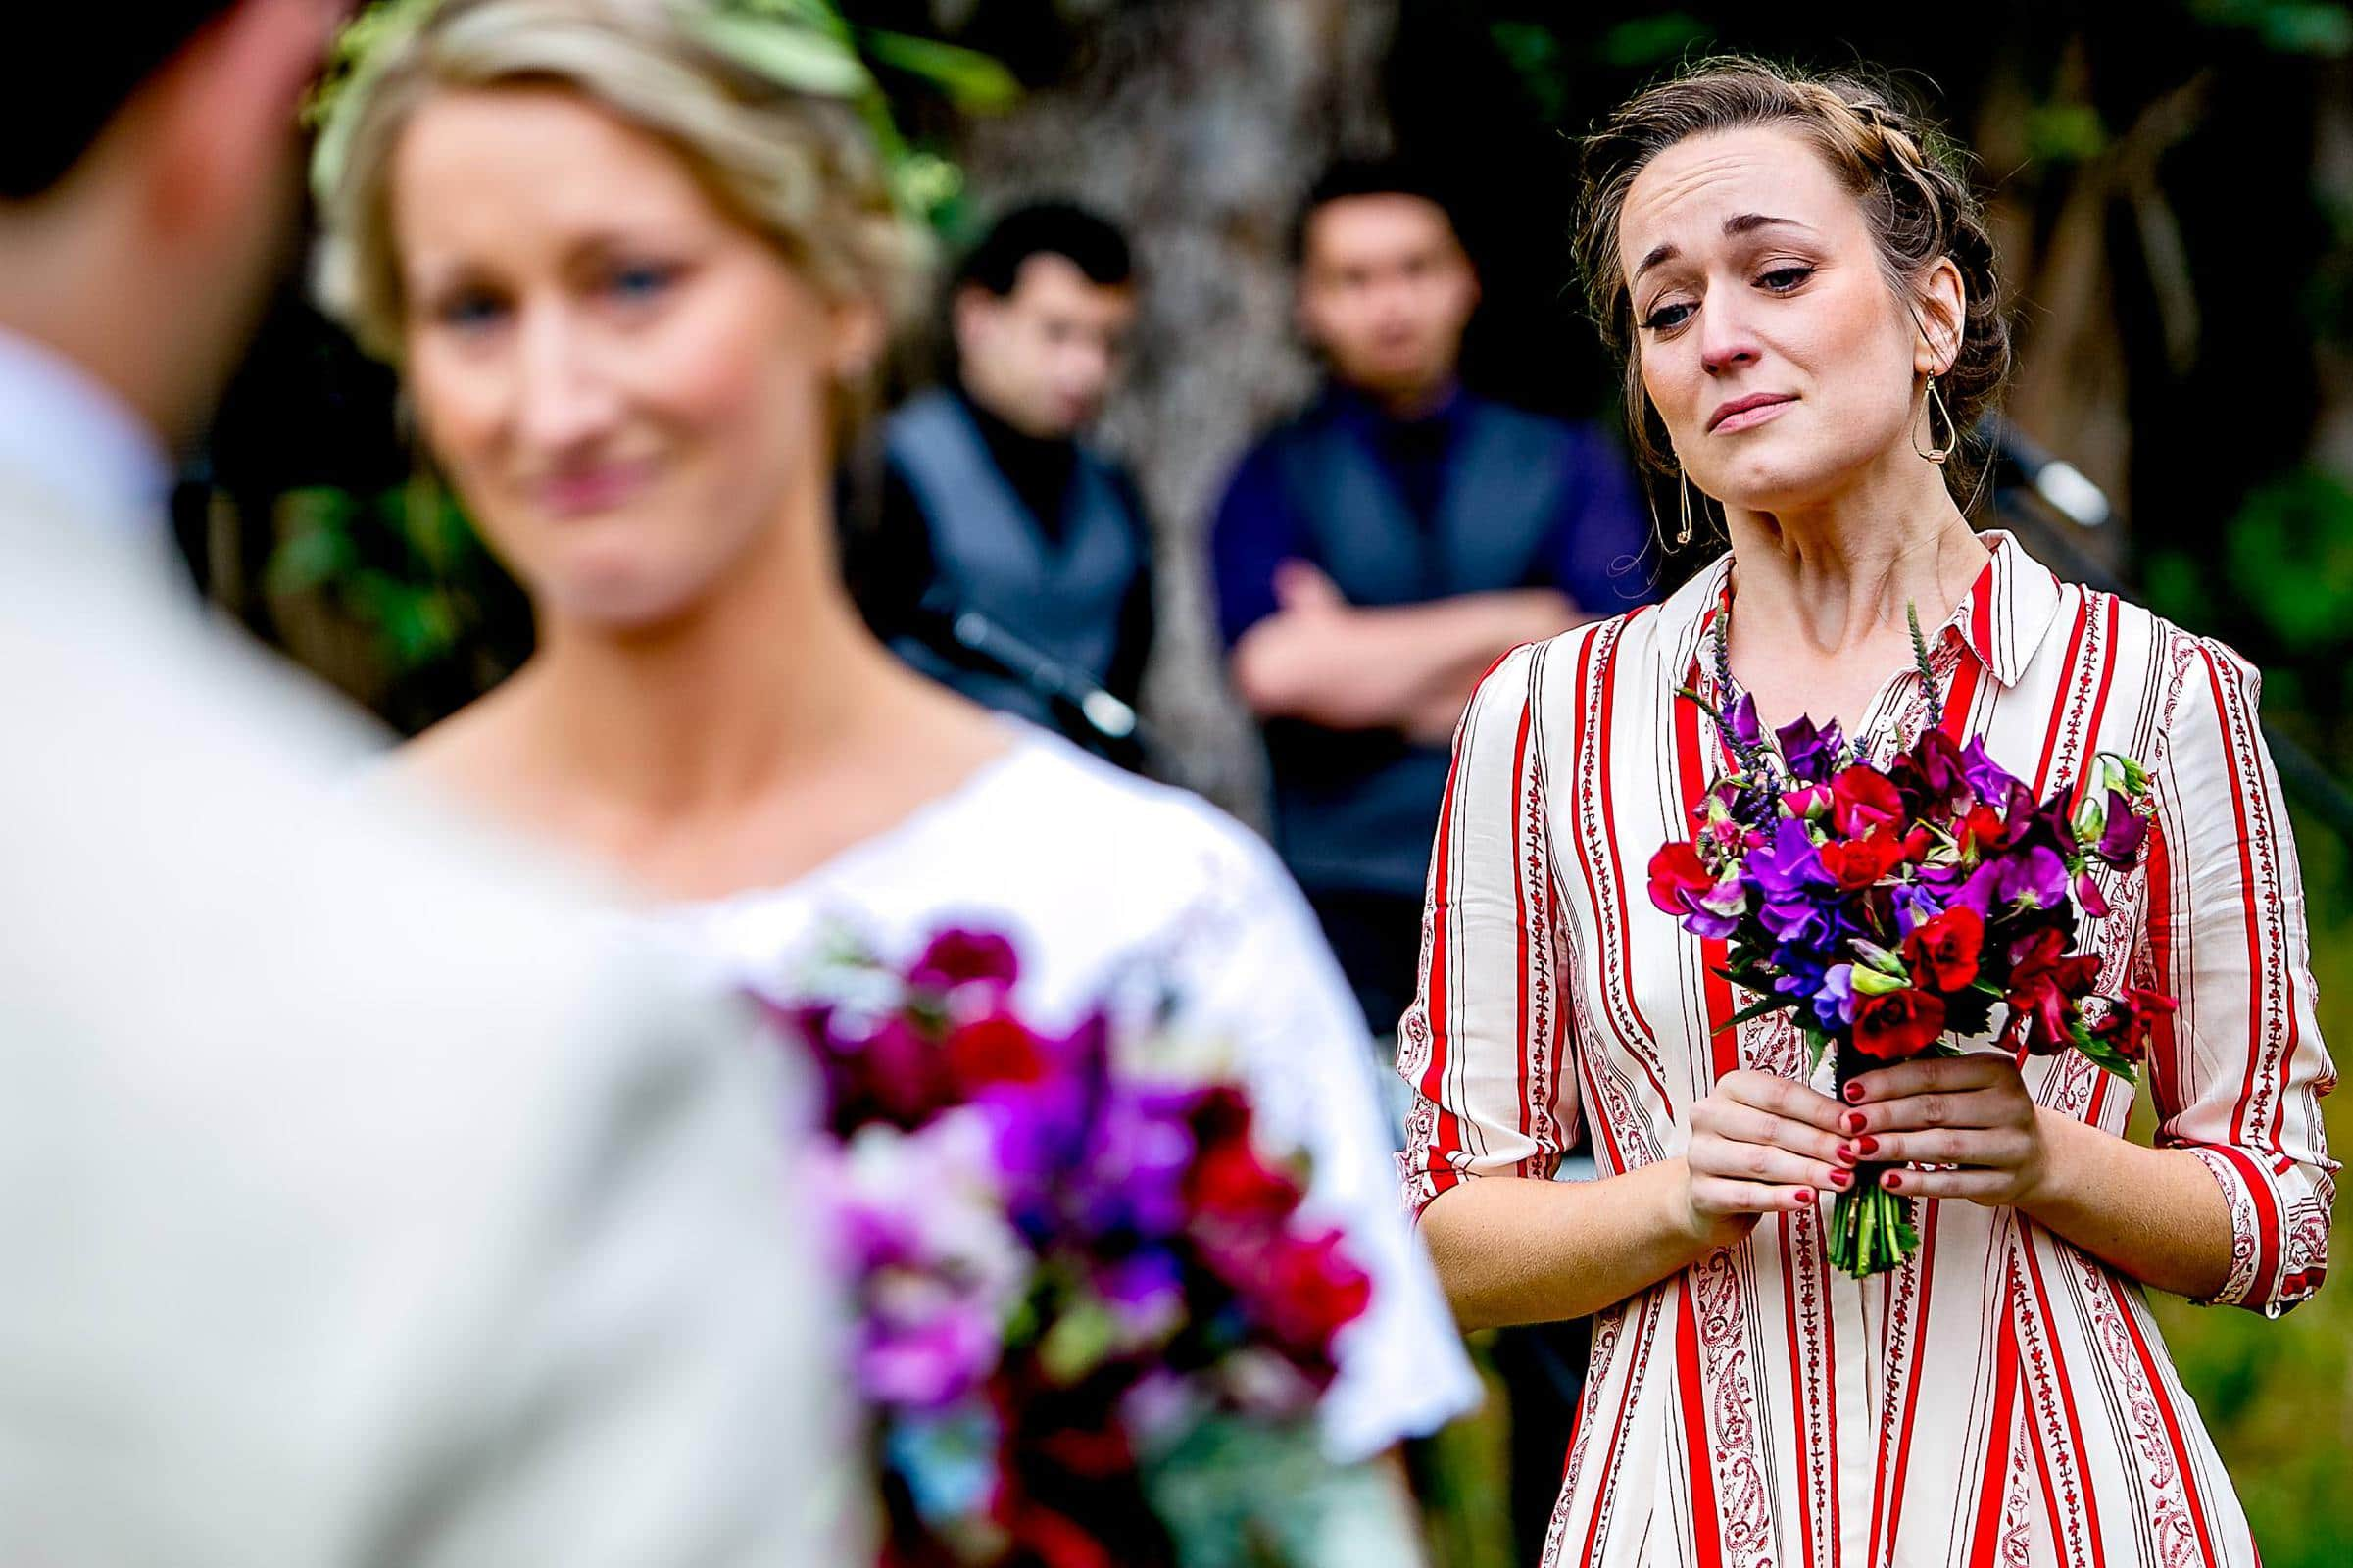 Emotional bridesmaid during a Sonoma wine country wedding ceremony